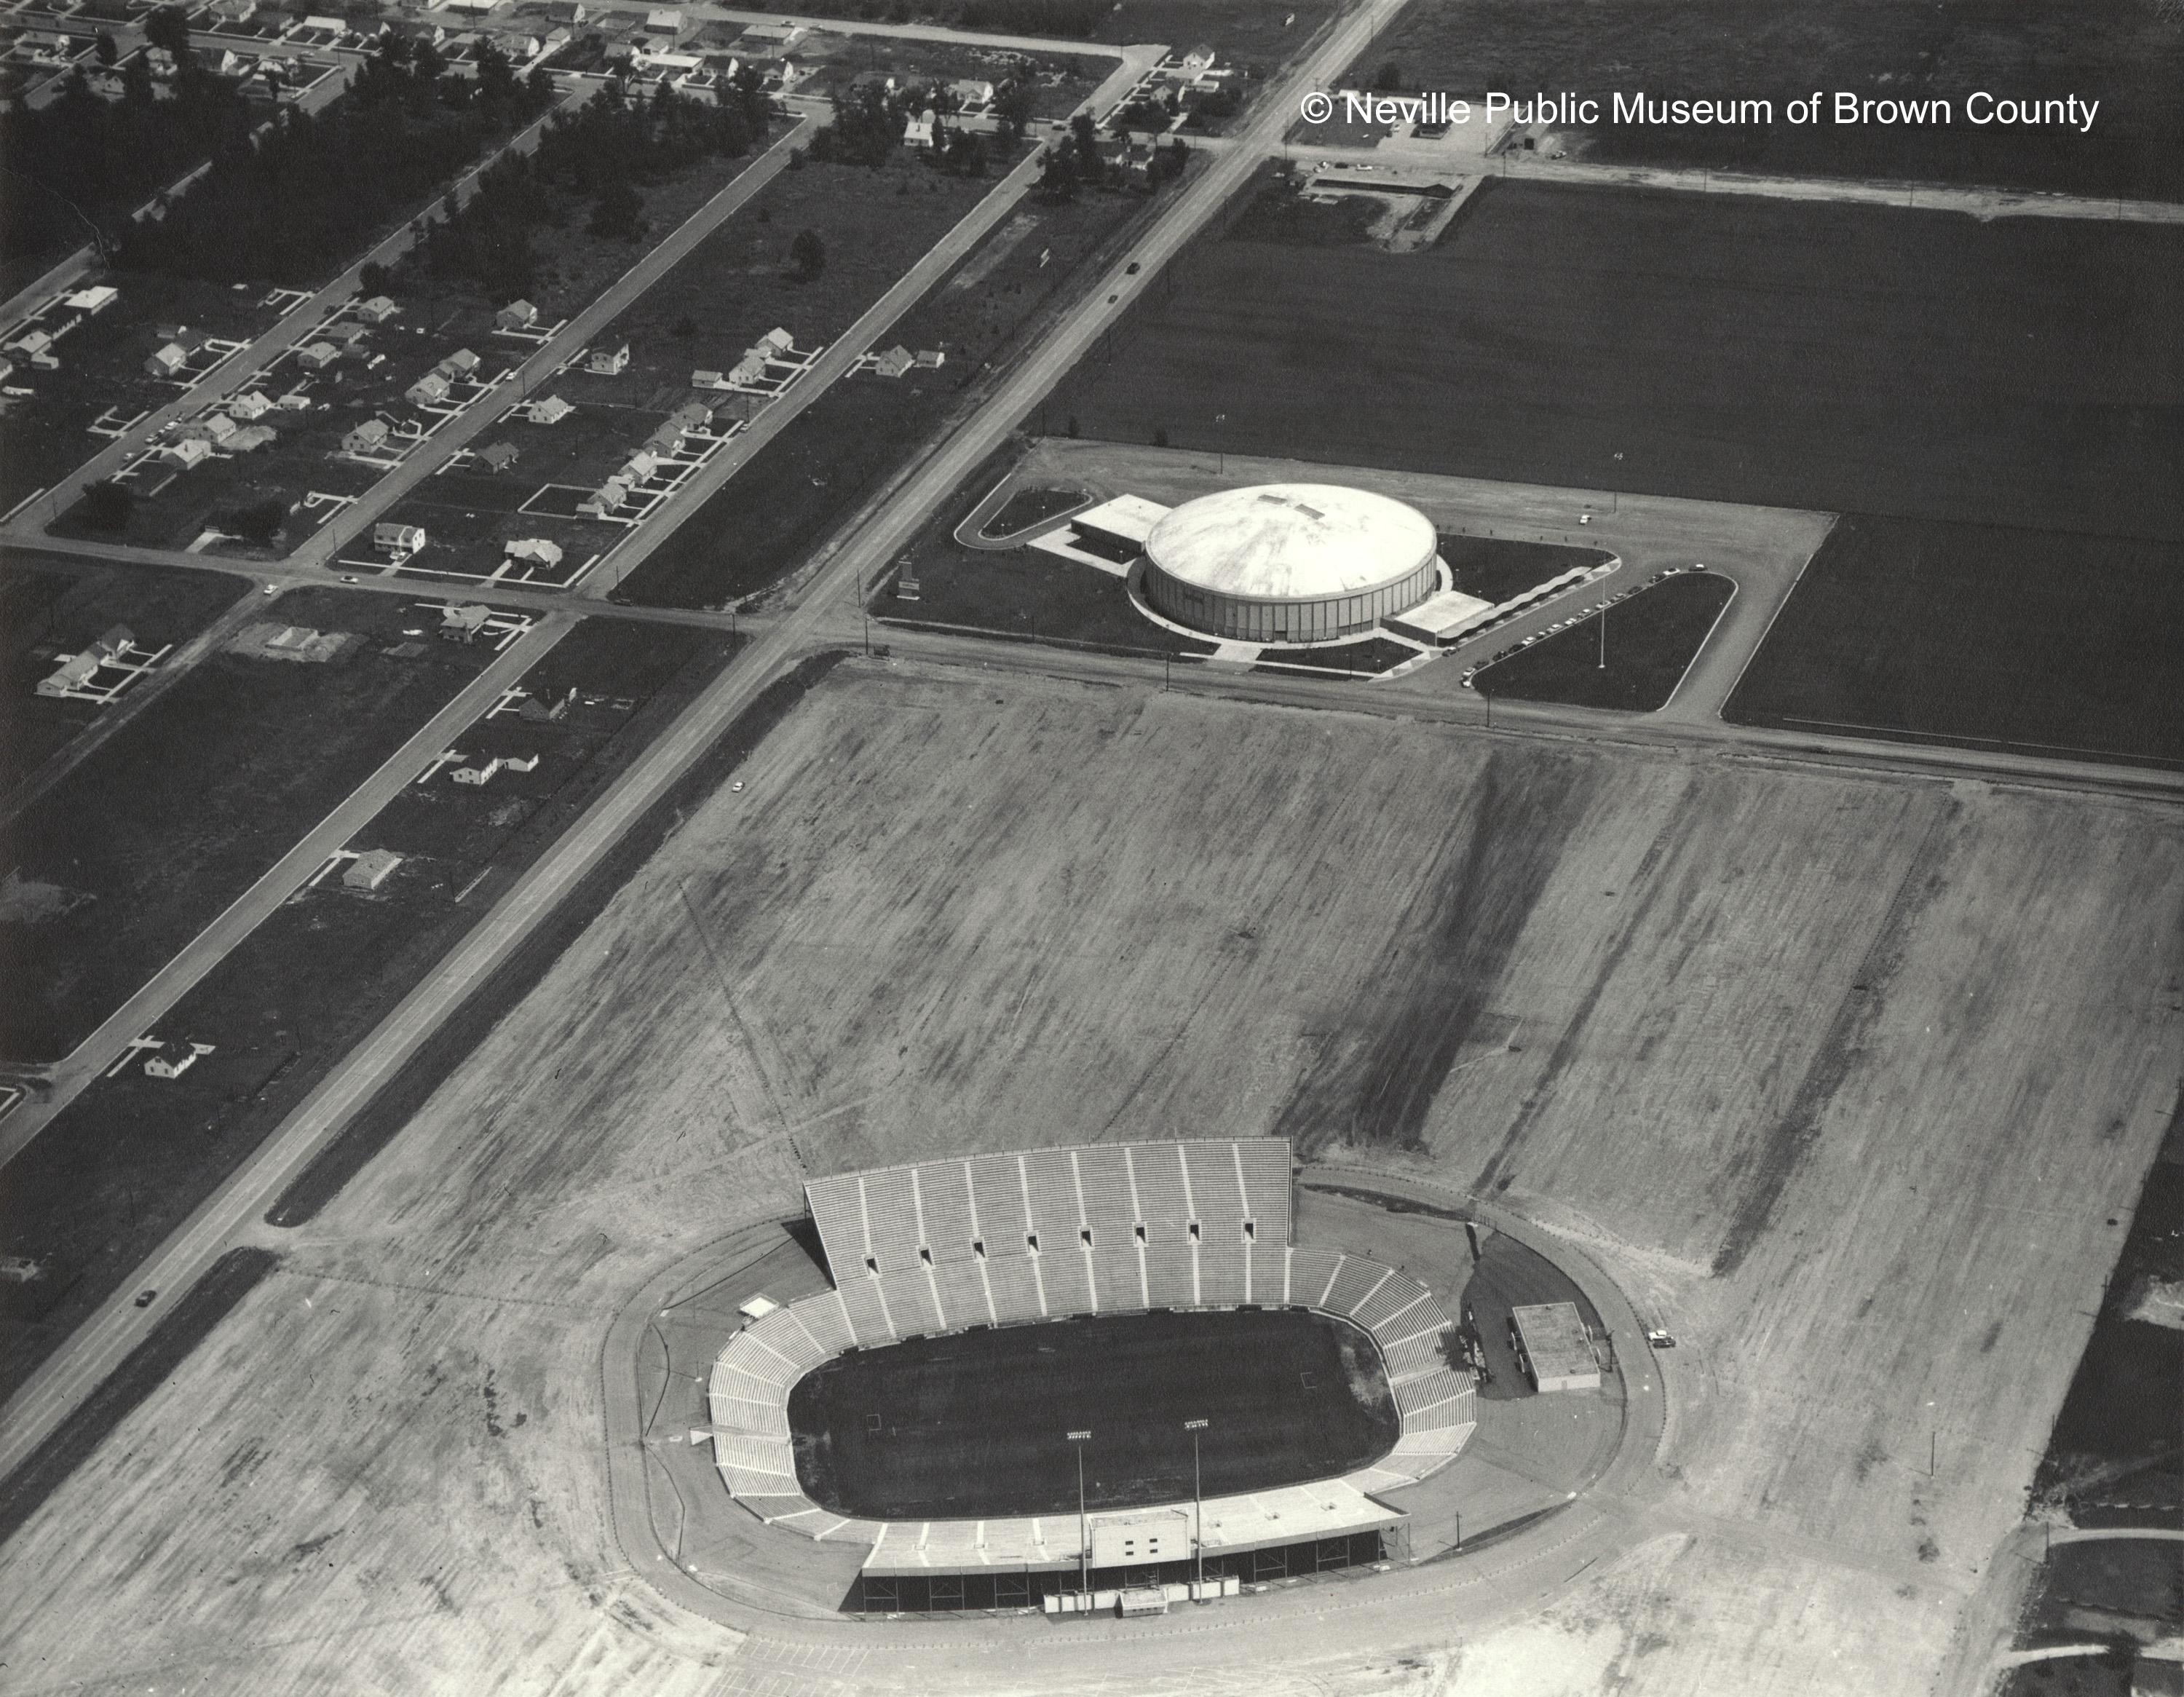 New City Stadium on the west side of Green Bay replaced City Stadium on the east side for the 1957 season. (Courtesy: Neville Public Museum of Brown County)